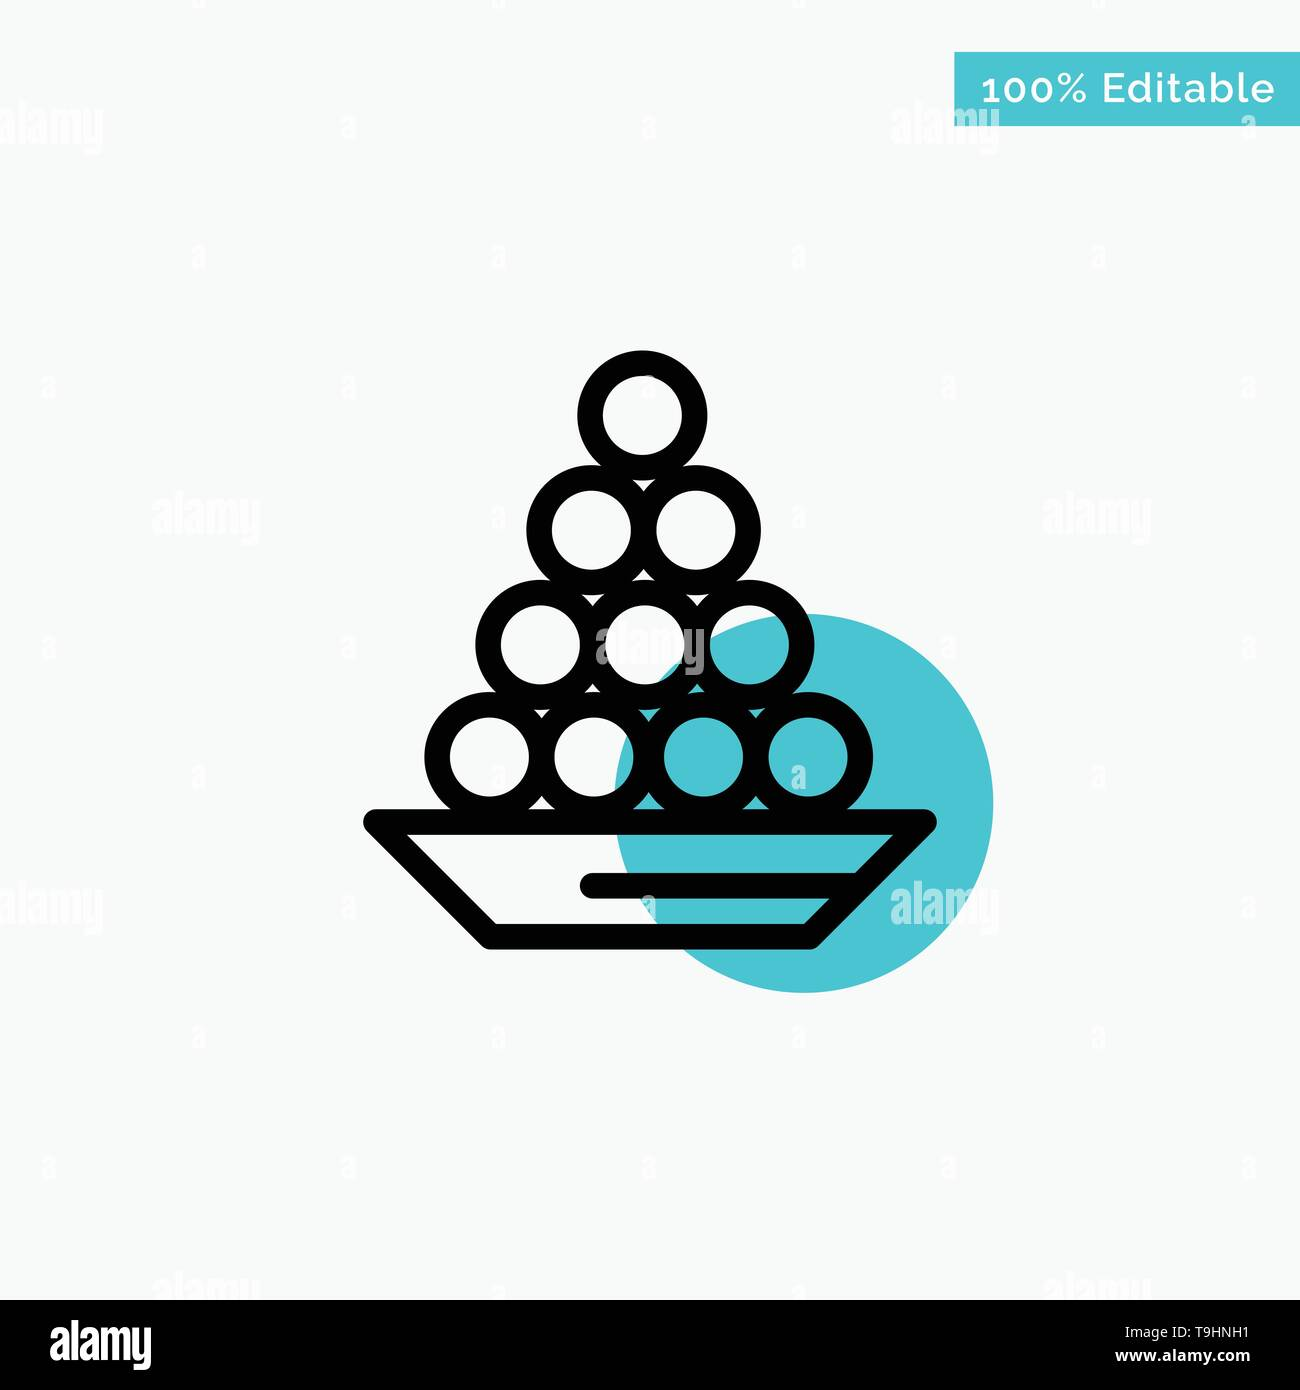 South Indian Food Vector Vectors High Resolution Stock Photography And Images Alamy